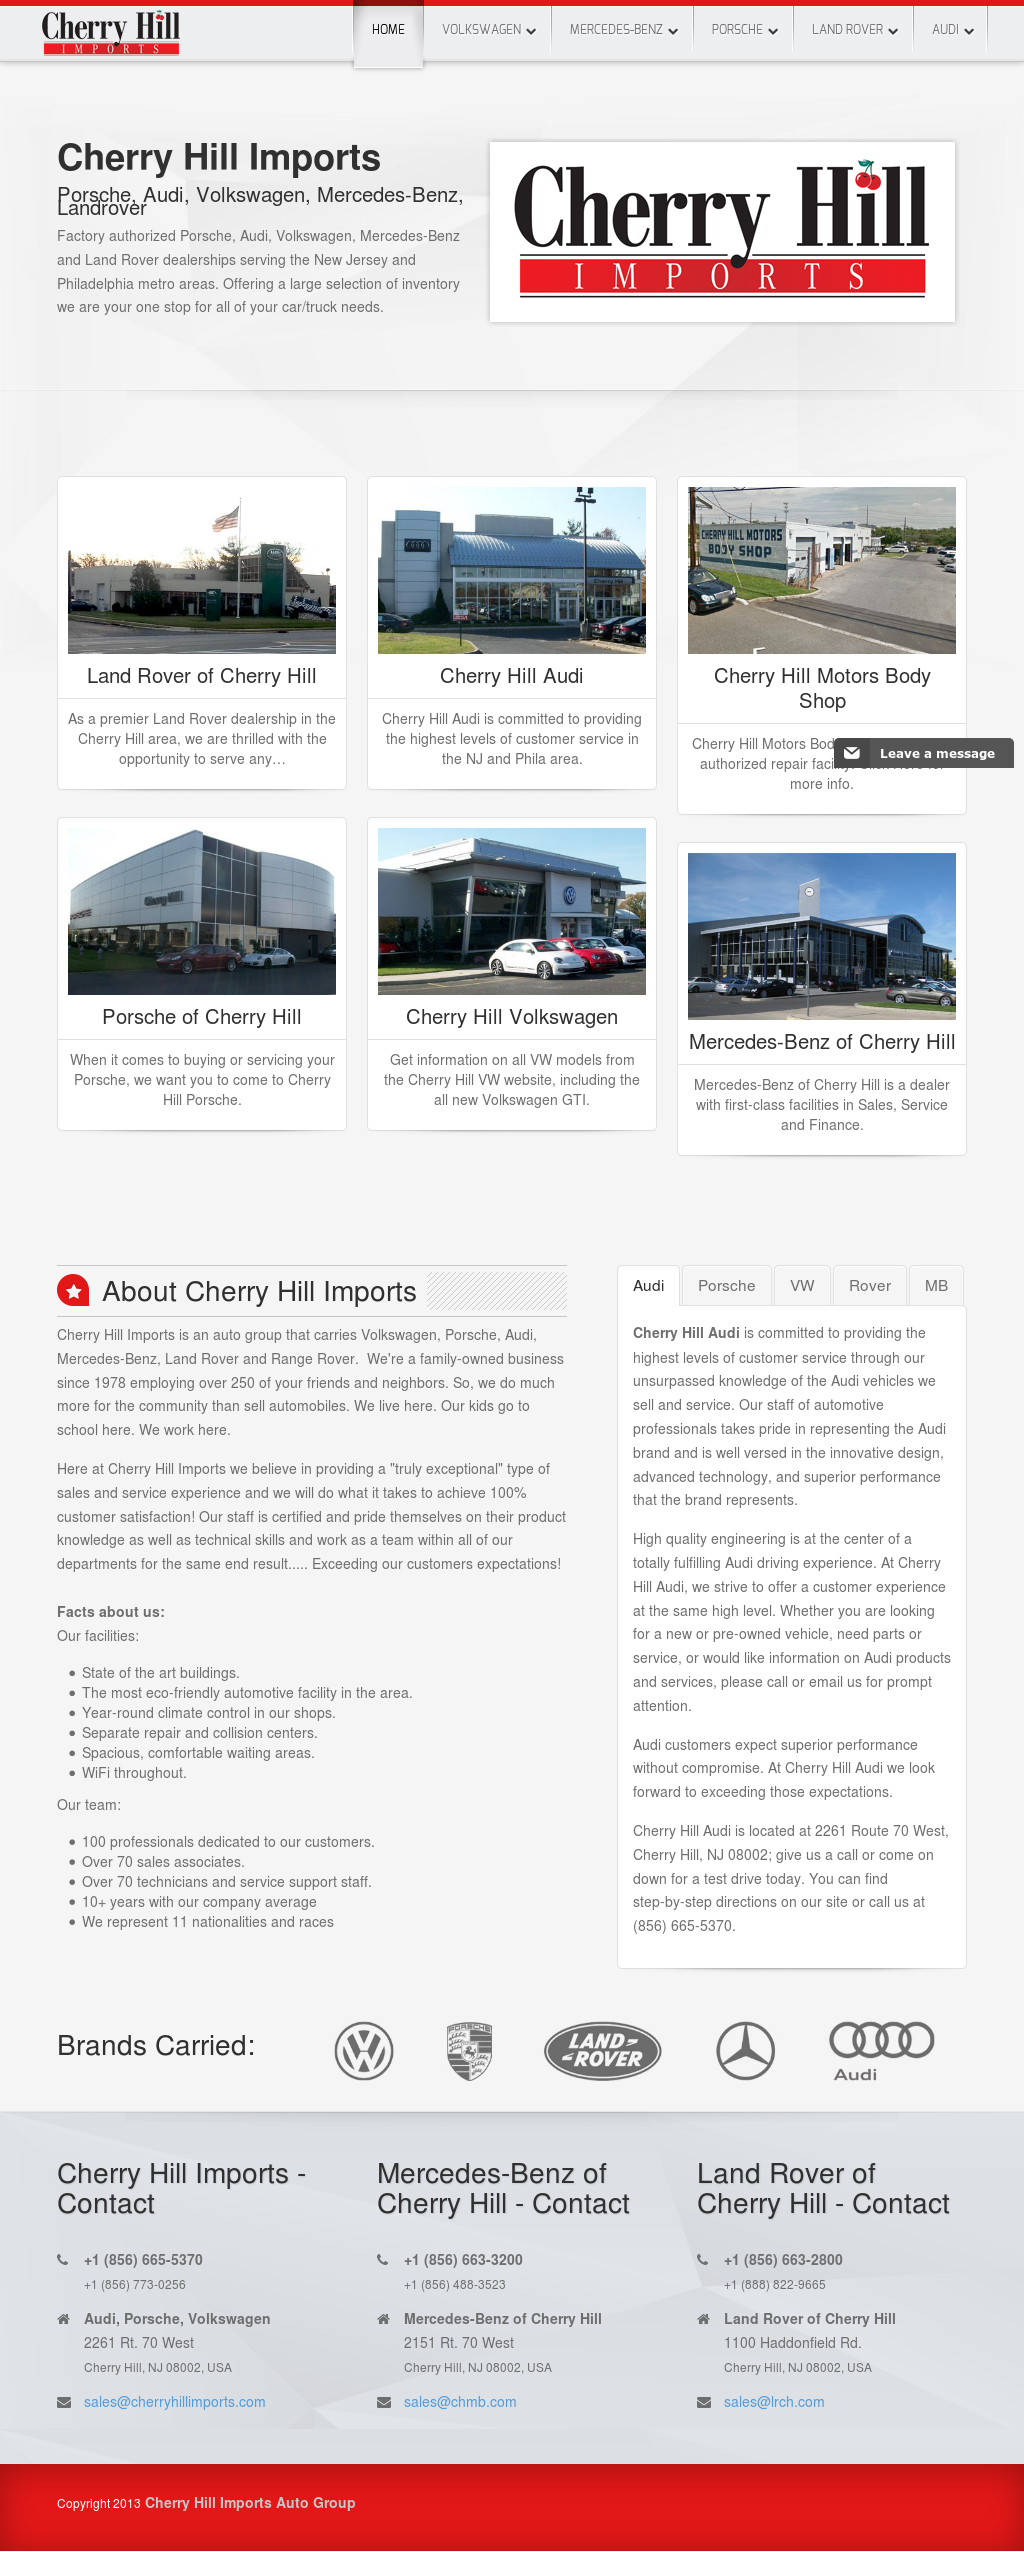 Cherry Hill Imports >> Cherry Hills Imports Competitors Revenue And Employees Owler